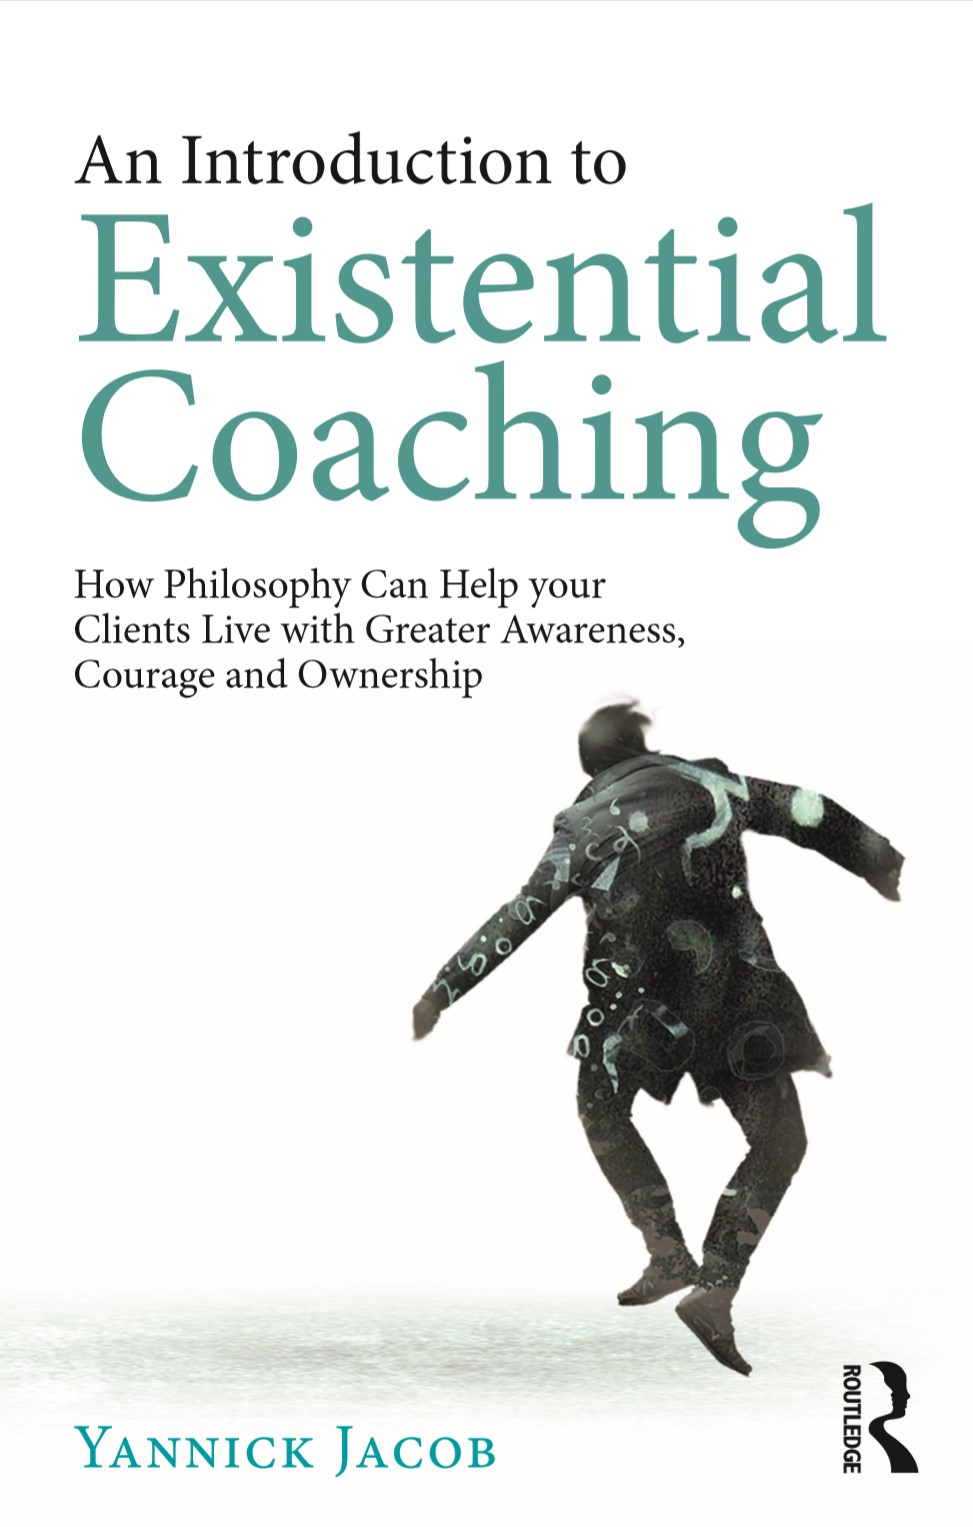 An Introduction to Existential Coaching (Routledge 2019)